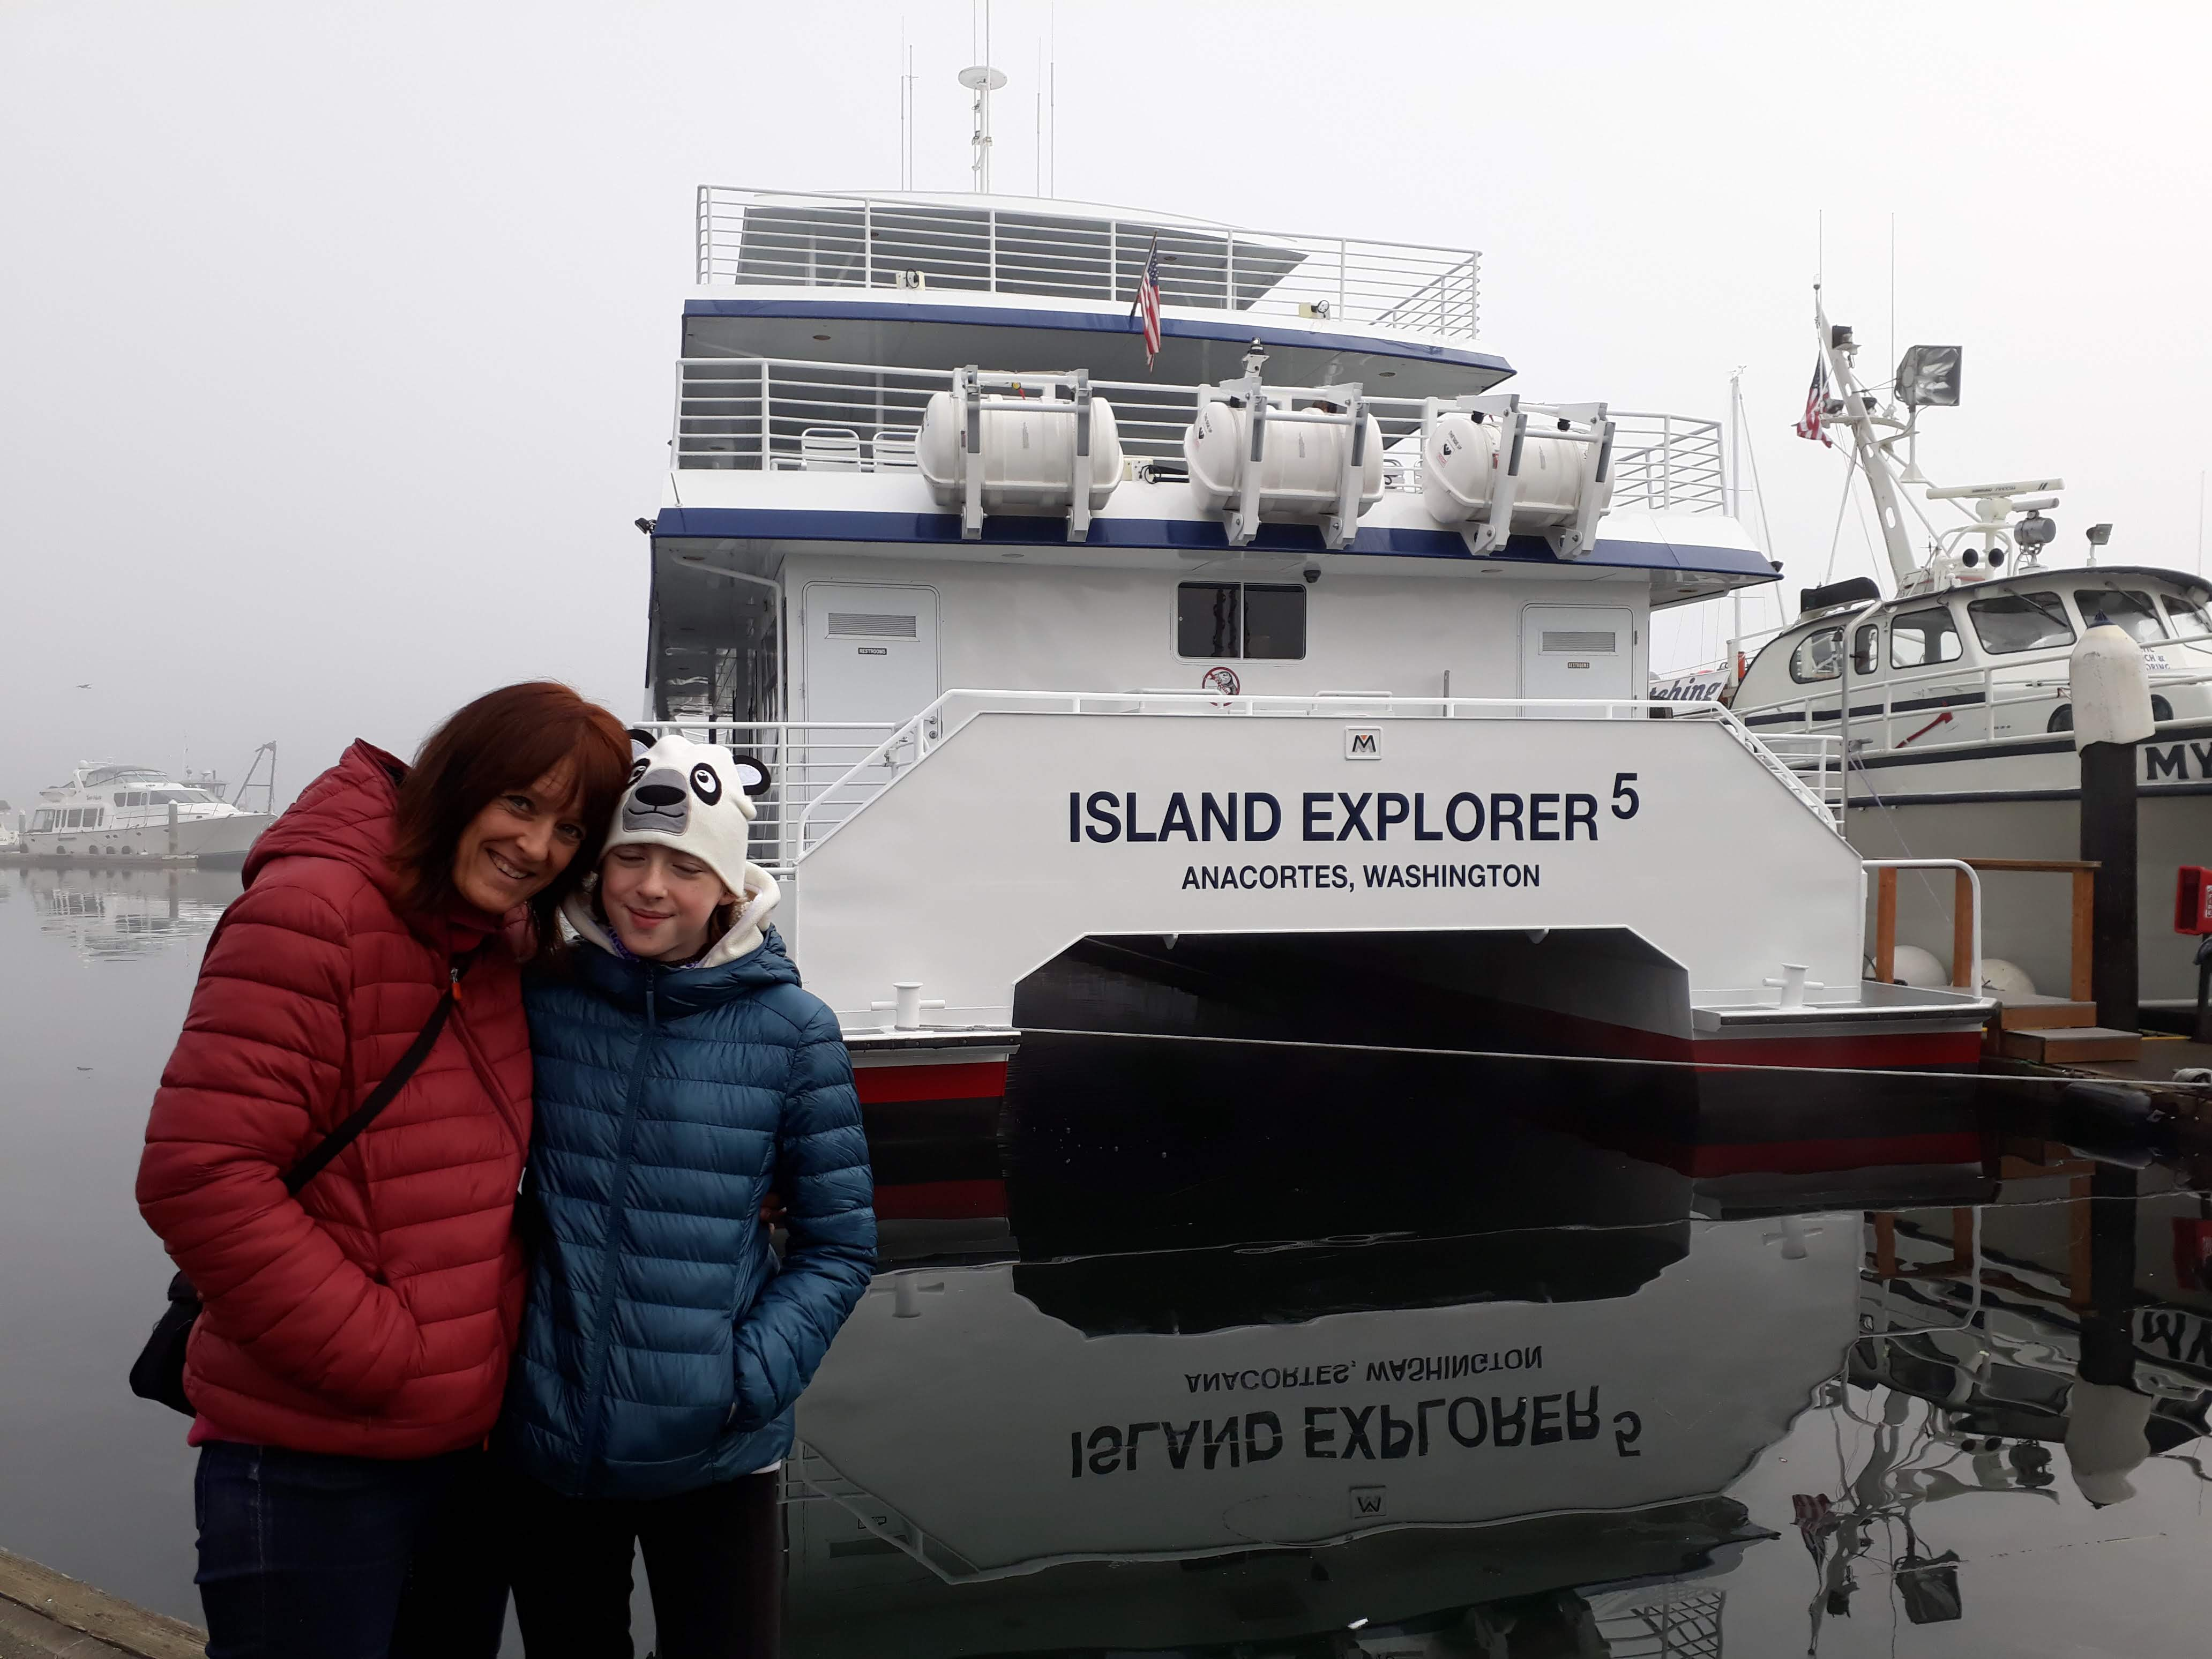 Anacortes whale watching - Island Explorer 5